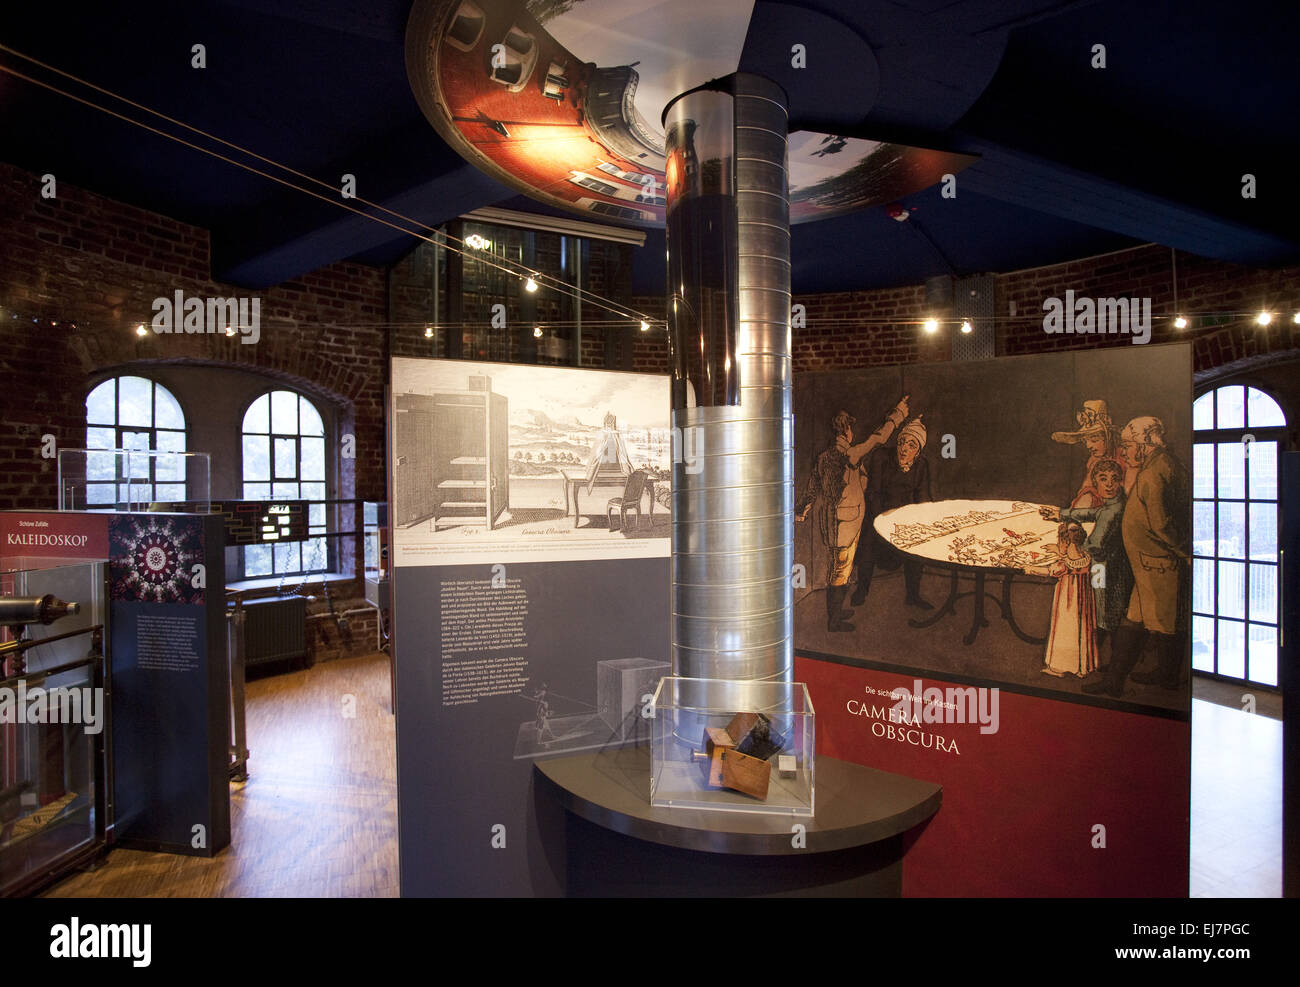 Museum Camera Obsura, Muelheim, Germany - Stock Image